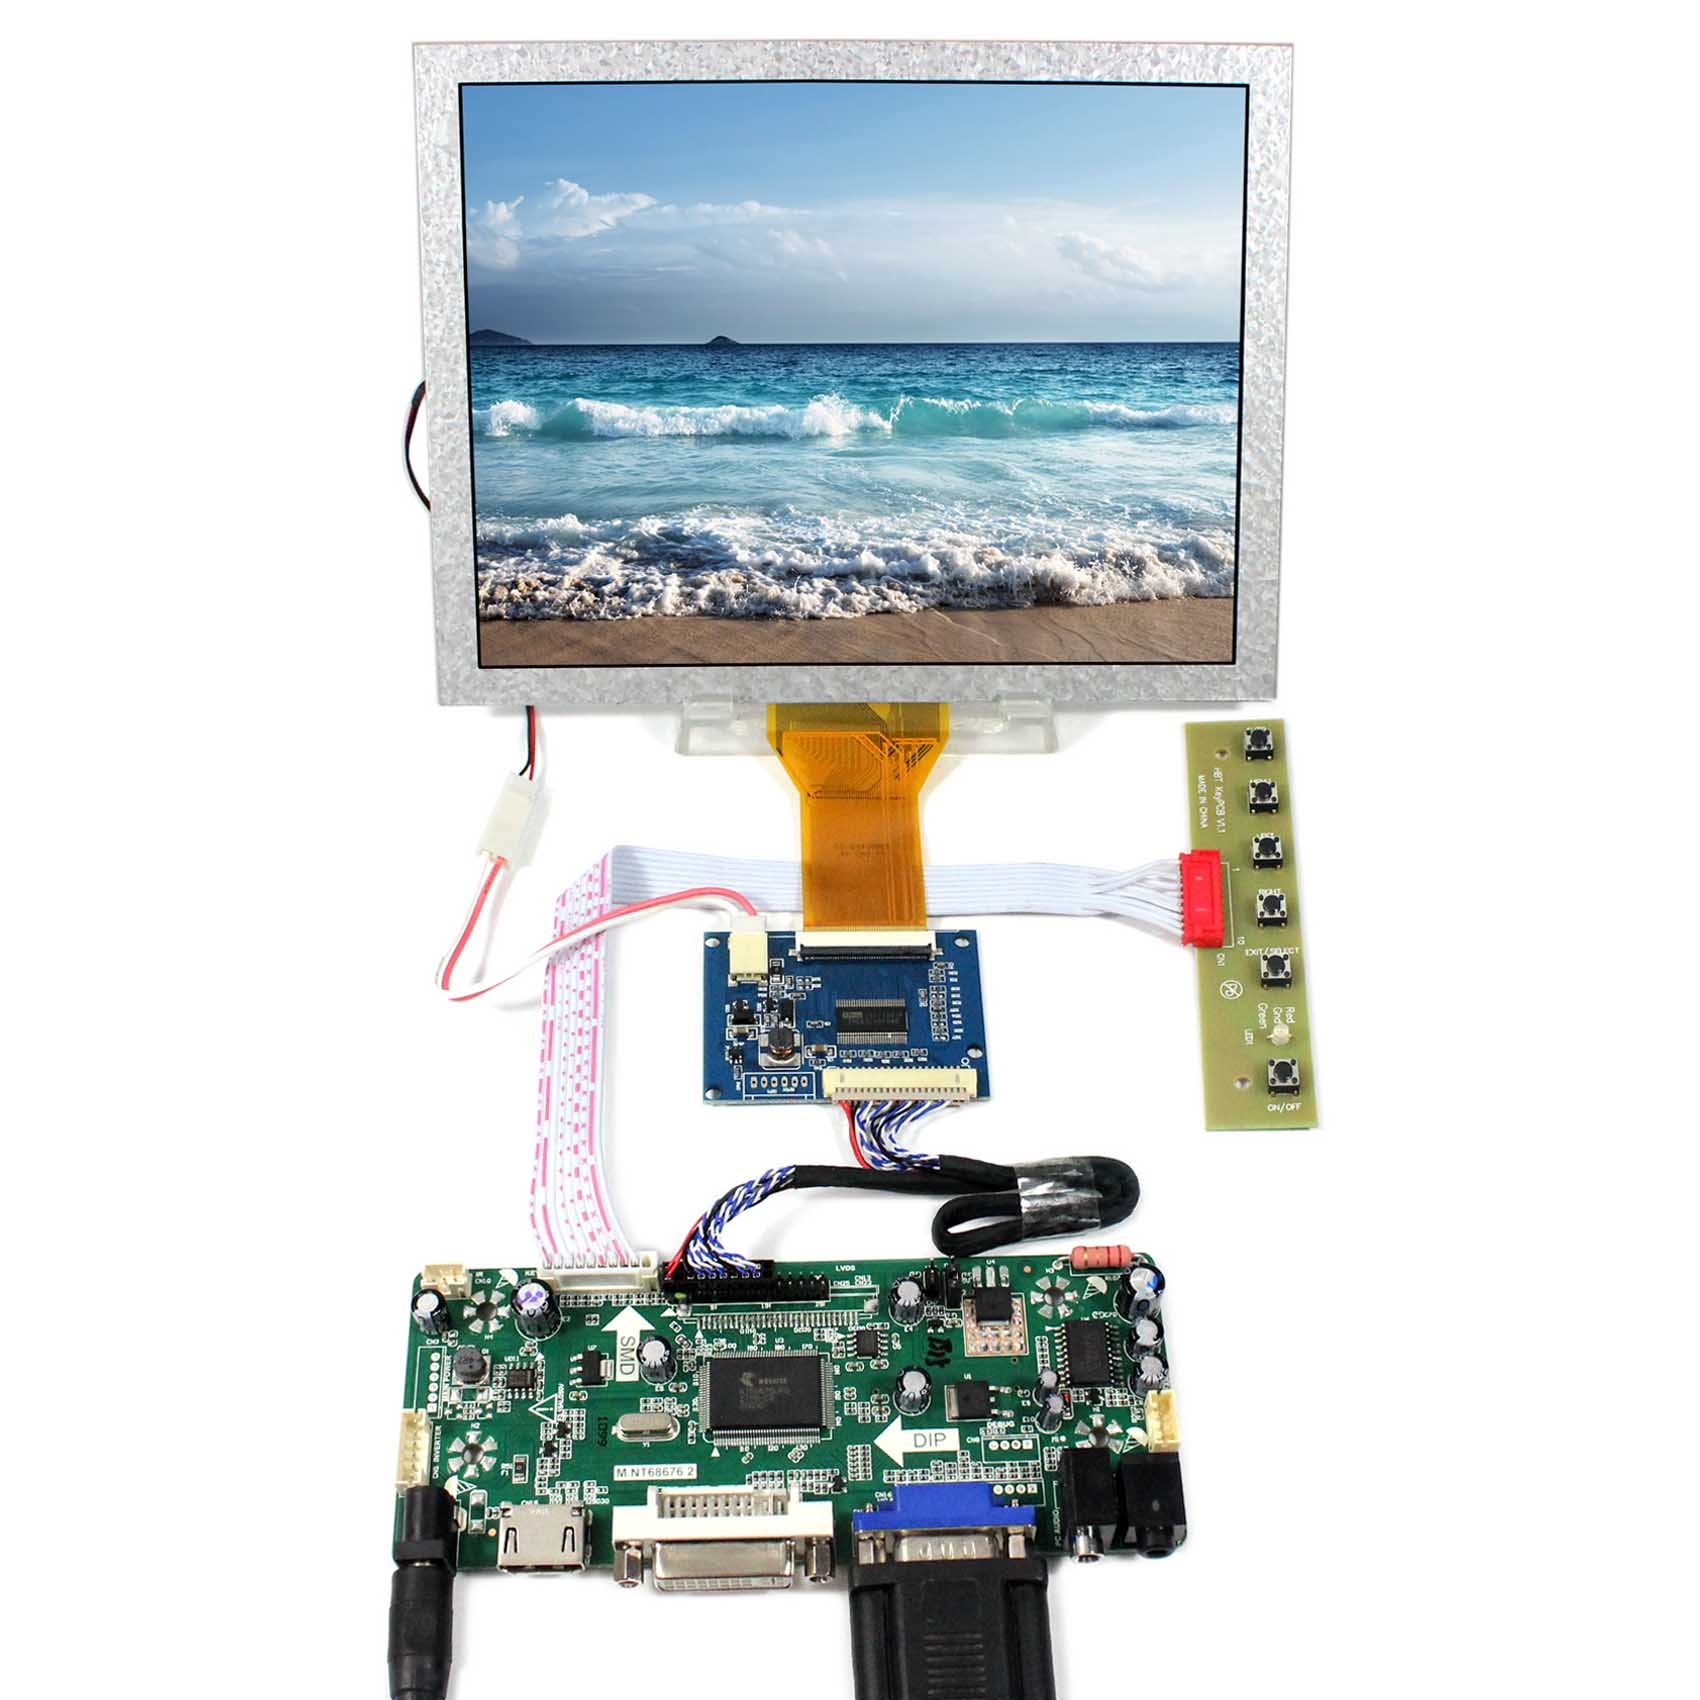 HDMI+VGA+DVI+Audio LCD Controller Board With 8inch 800x600 EJ080NA-05A LCD Panel free shipping vga audio hdmi dvi lcd controller board hdmi dvi for 10 1 inch 1024x600 n101l6 l0a n101l6 l02 wled lvds lcd panel